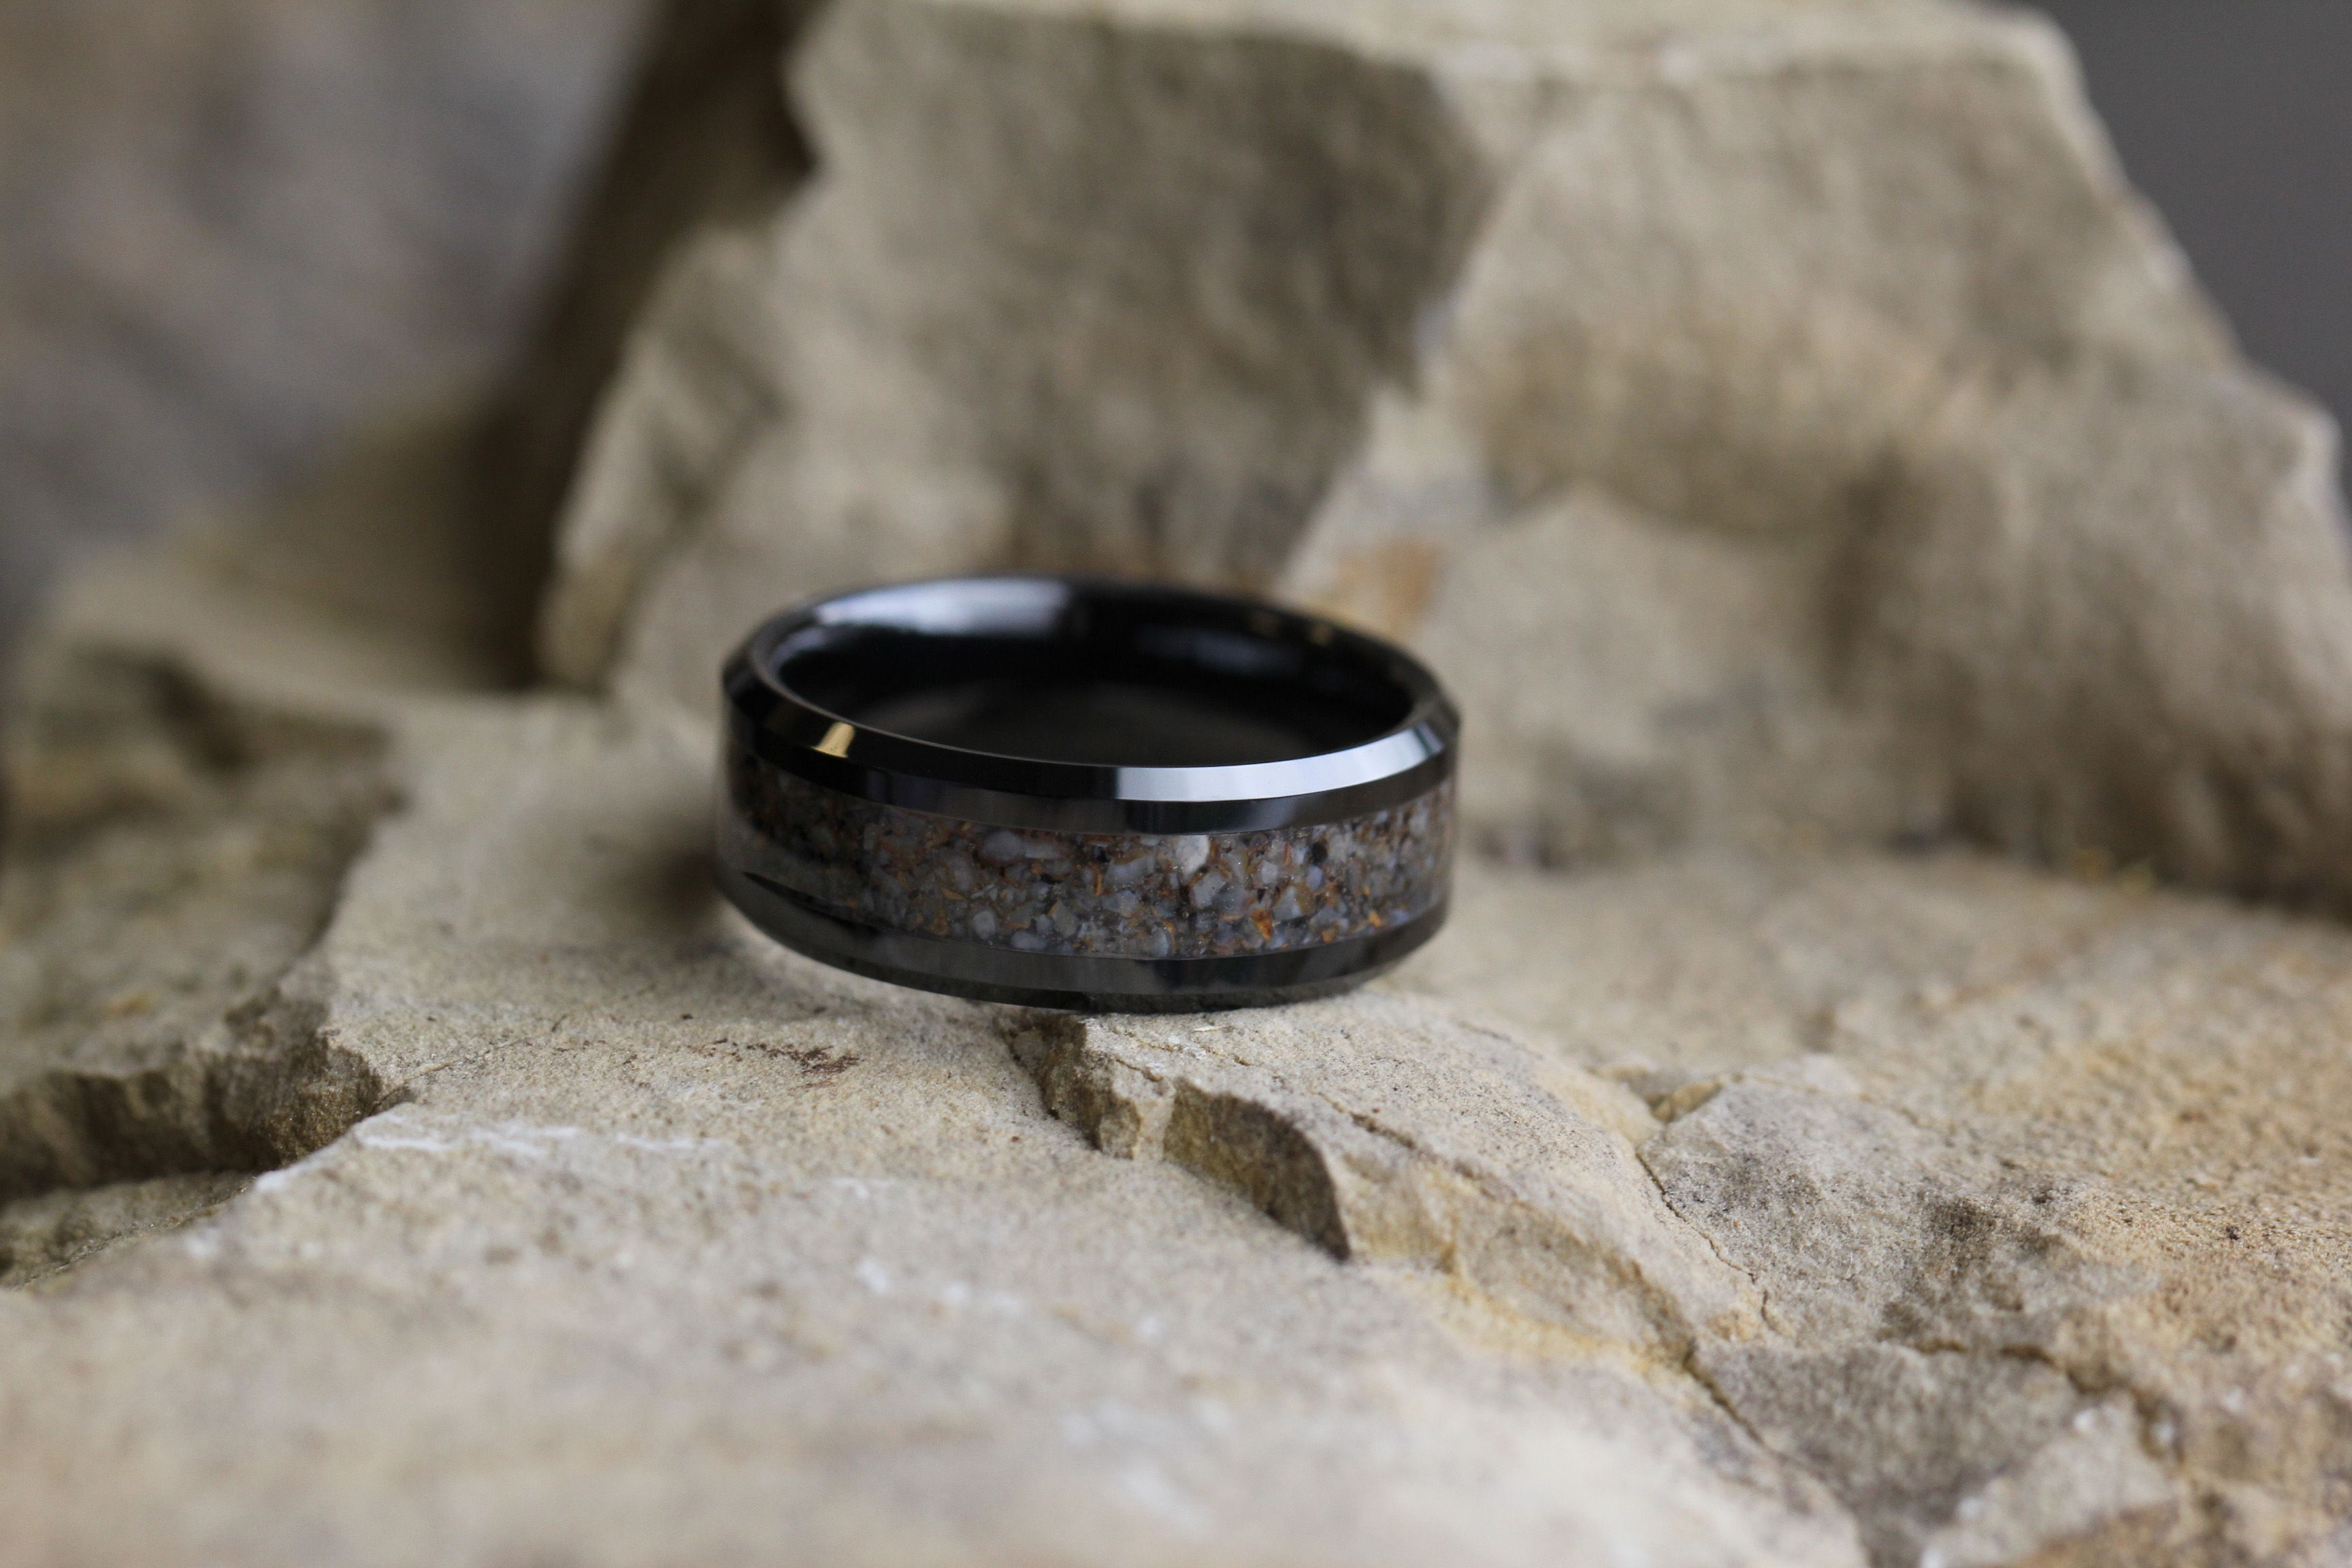 dinosaur johan gibeon re band imagined rings and bone collections wedding crushed by with meteorite fossil jewelry